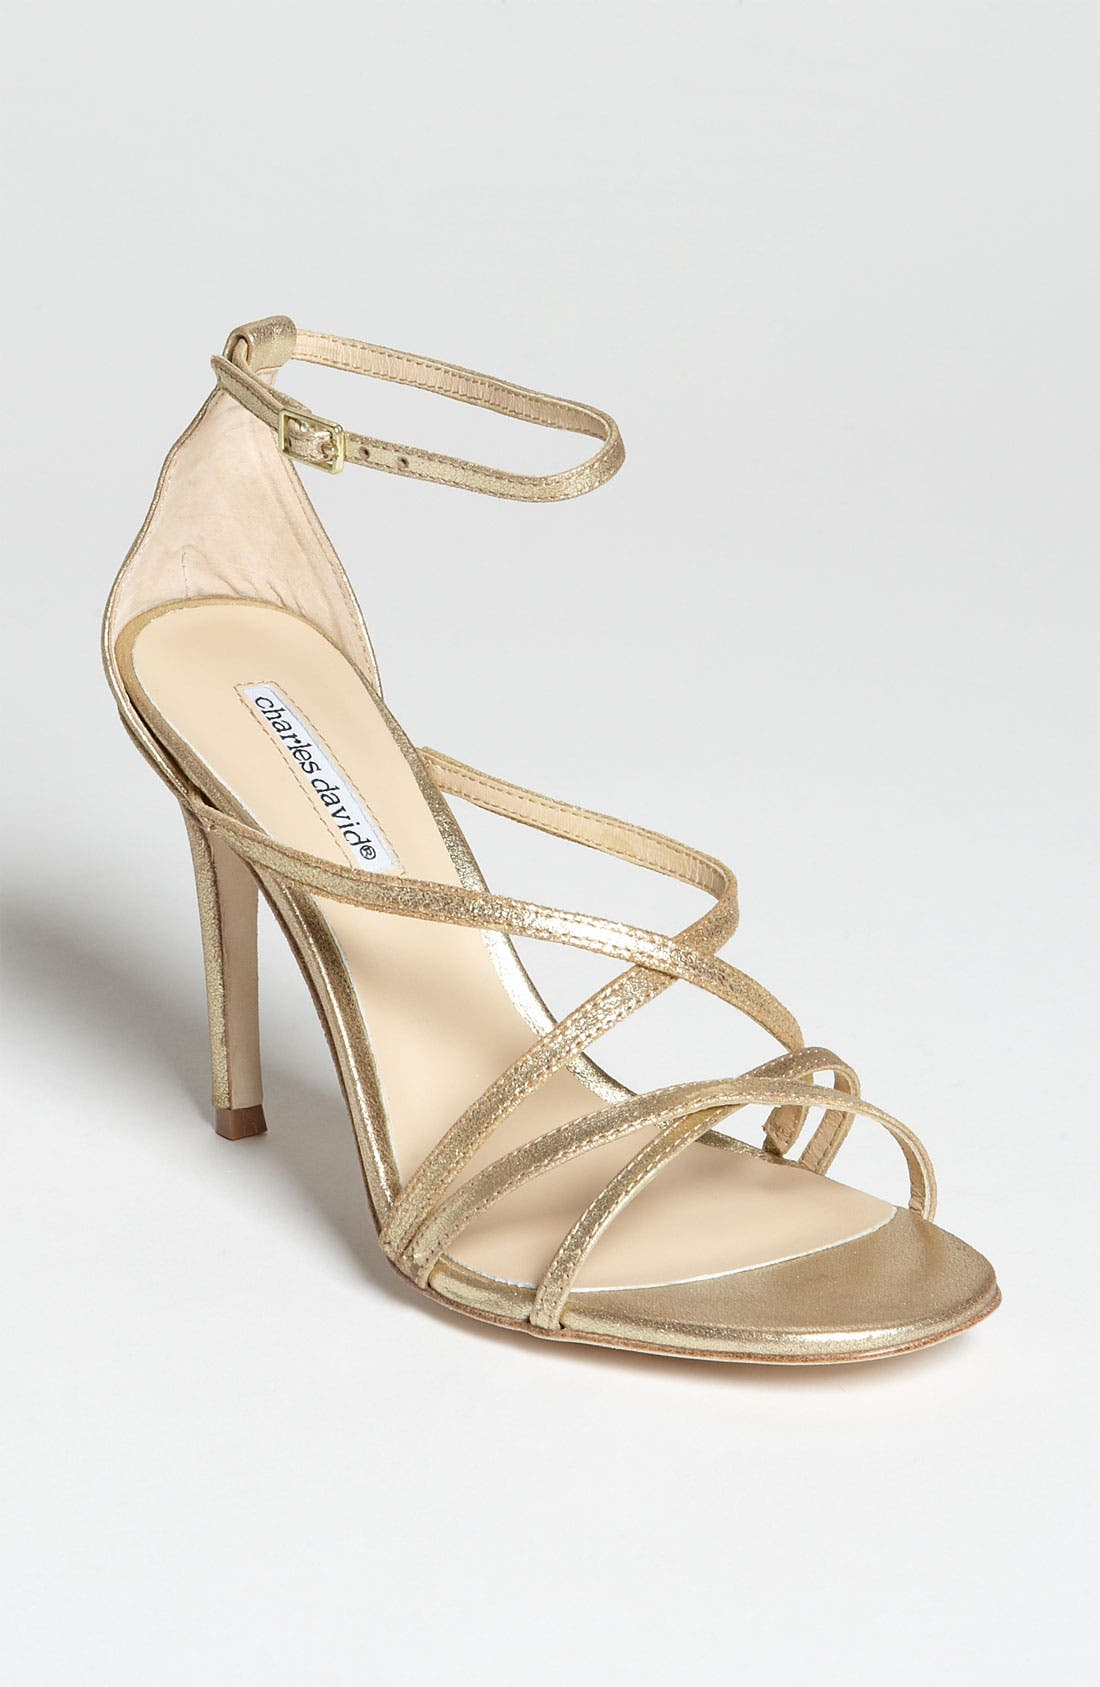 Main Image - Charles David 'Morgan' Sandal